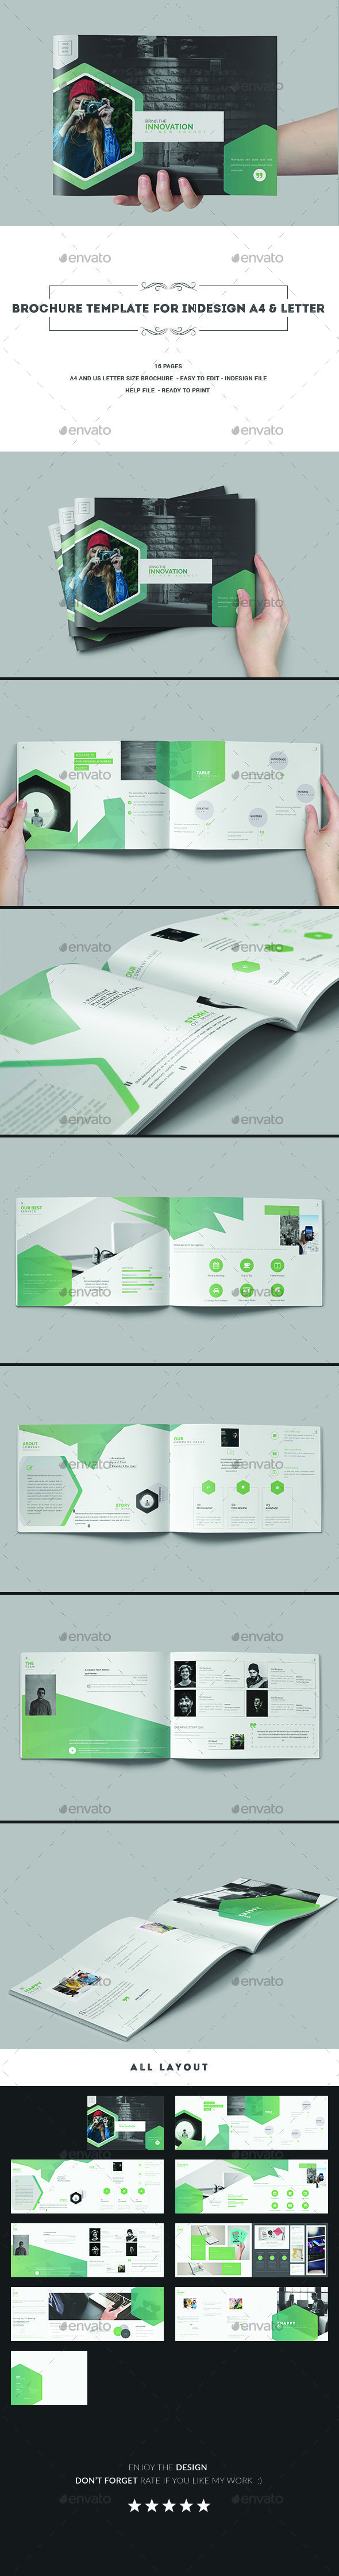 Brochure Template InDesign INDD - A4 and Letter Size